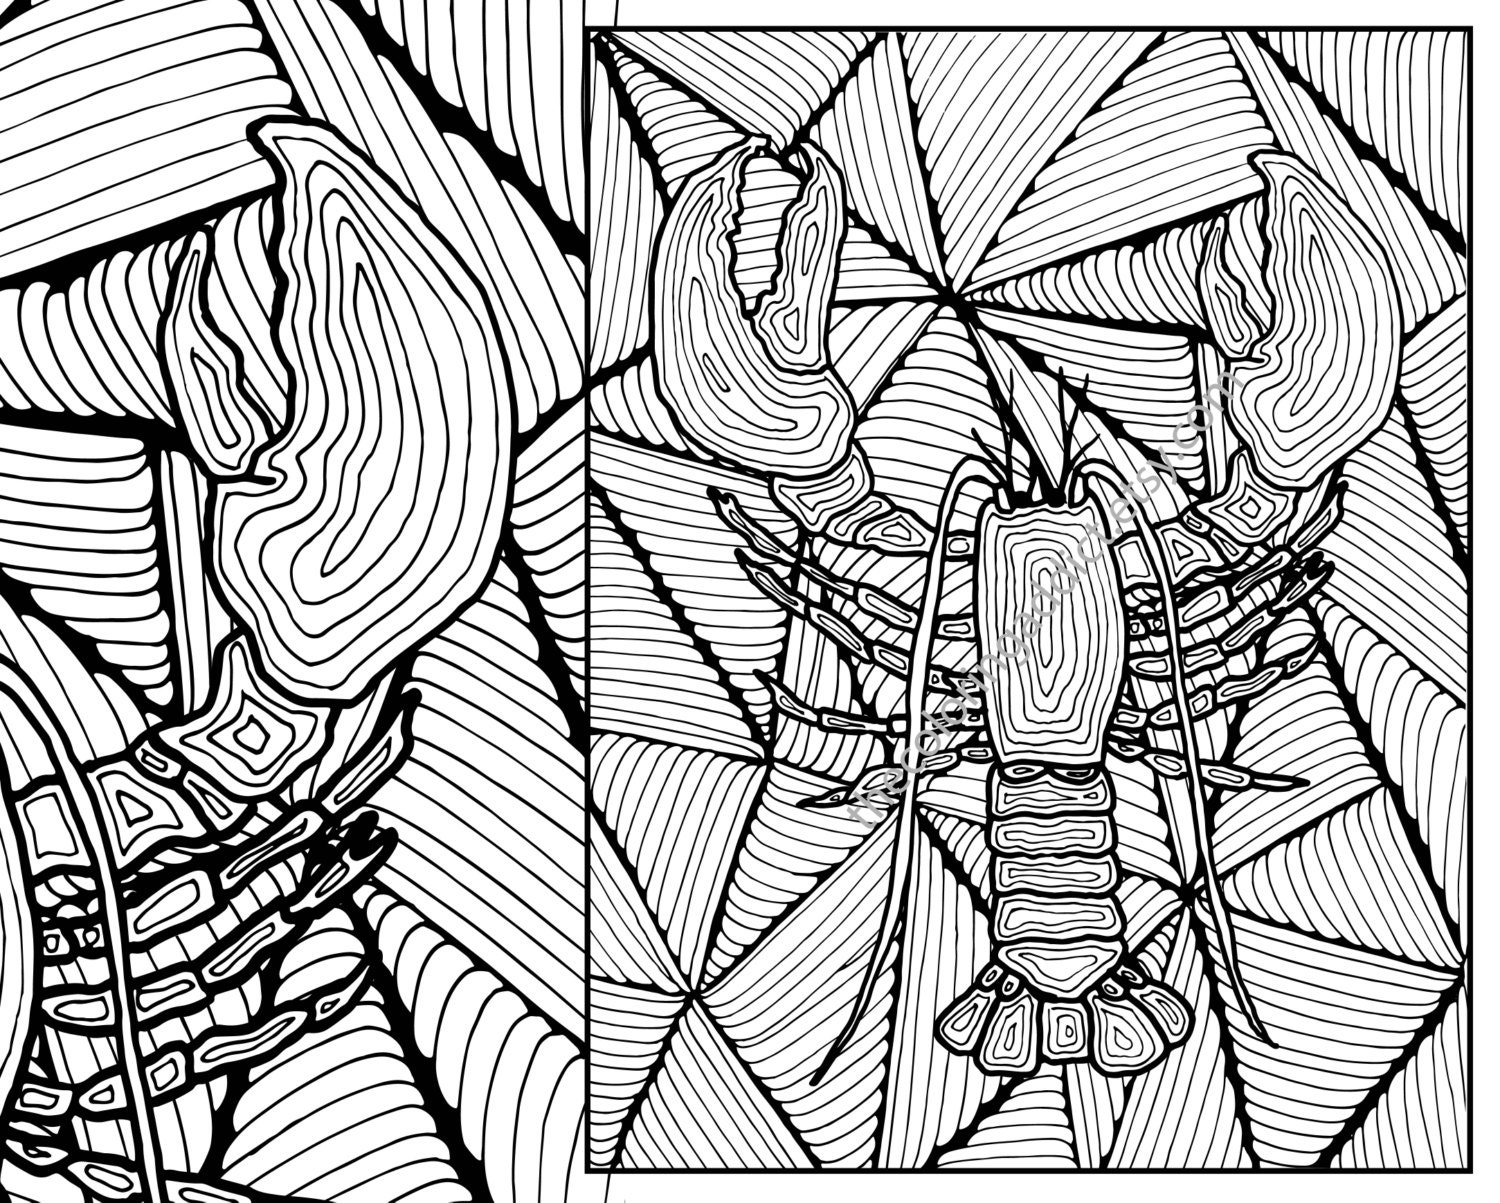 Lobster Adult Coloring Page Adult Coloring Sheet Colouring Etsy